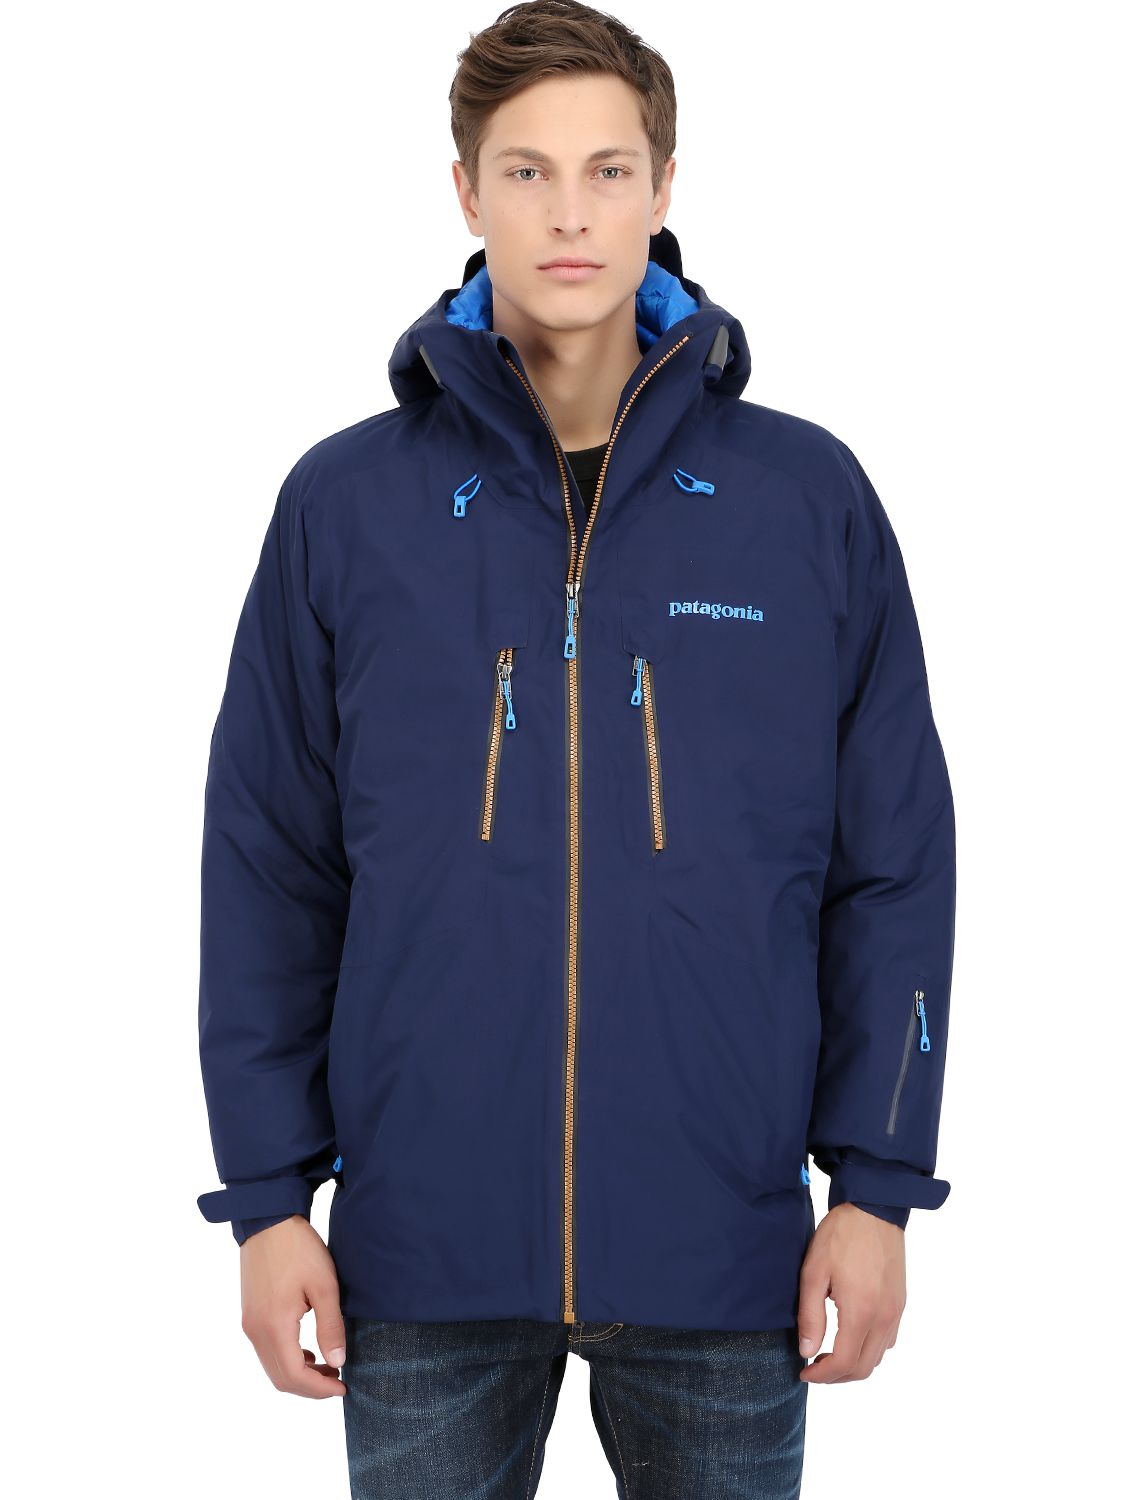 Patagonia Primo Down Jacket in Navy (Blue) for Men